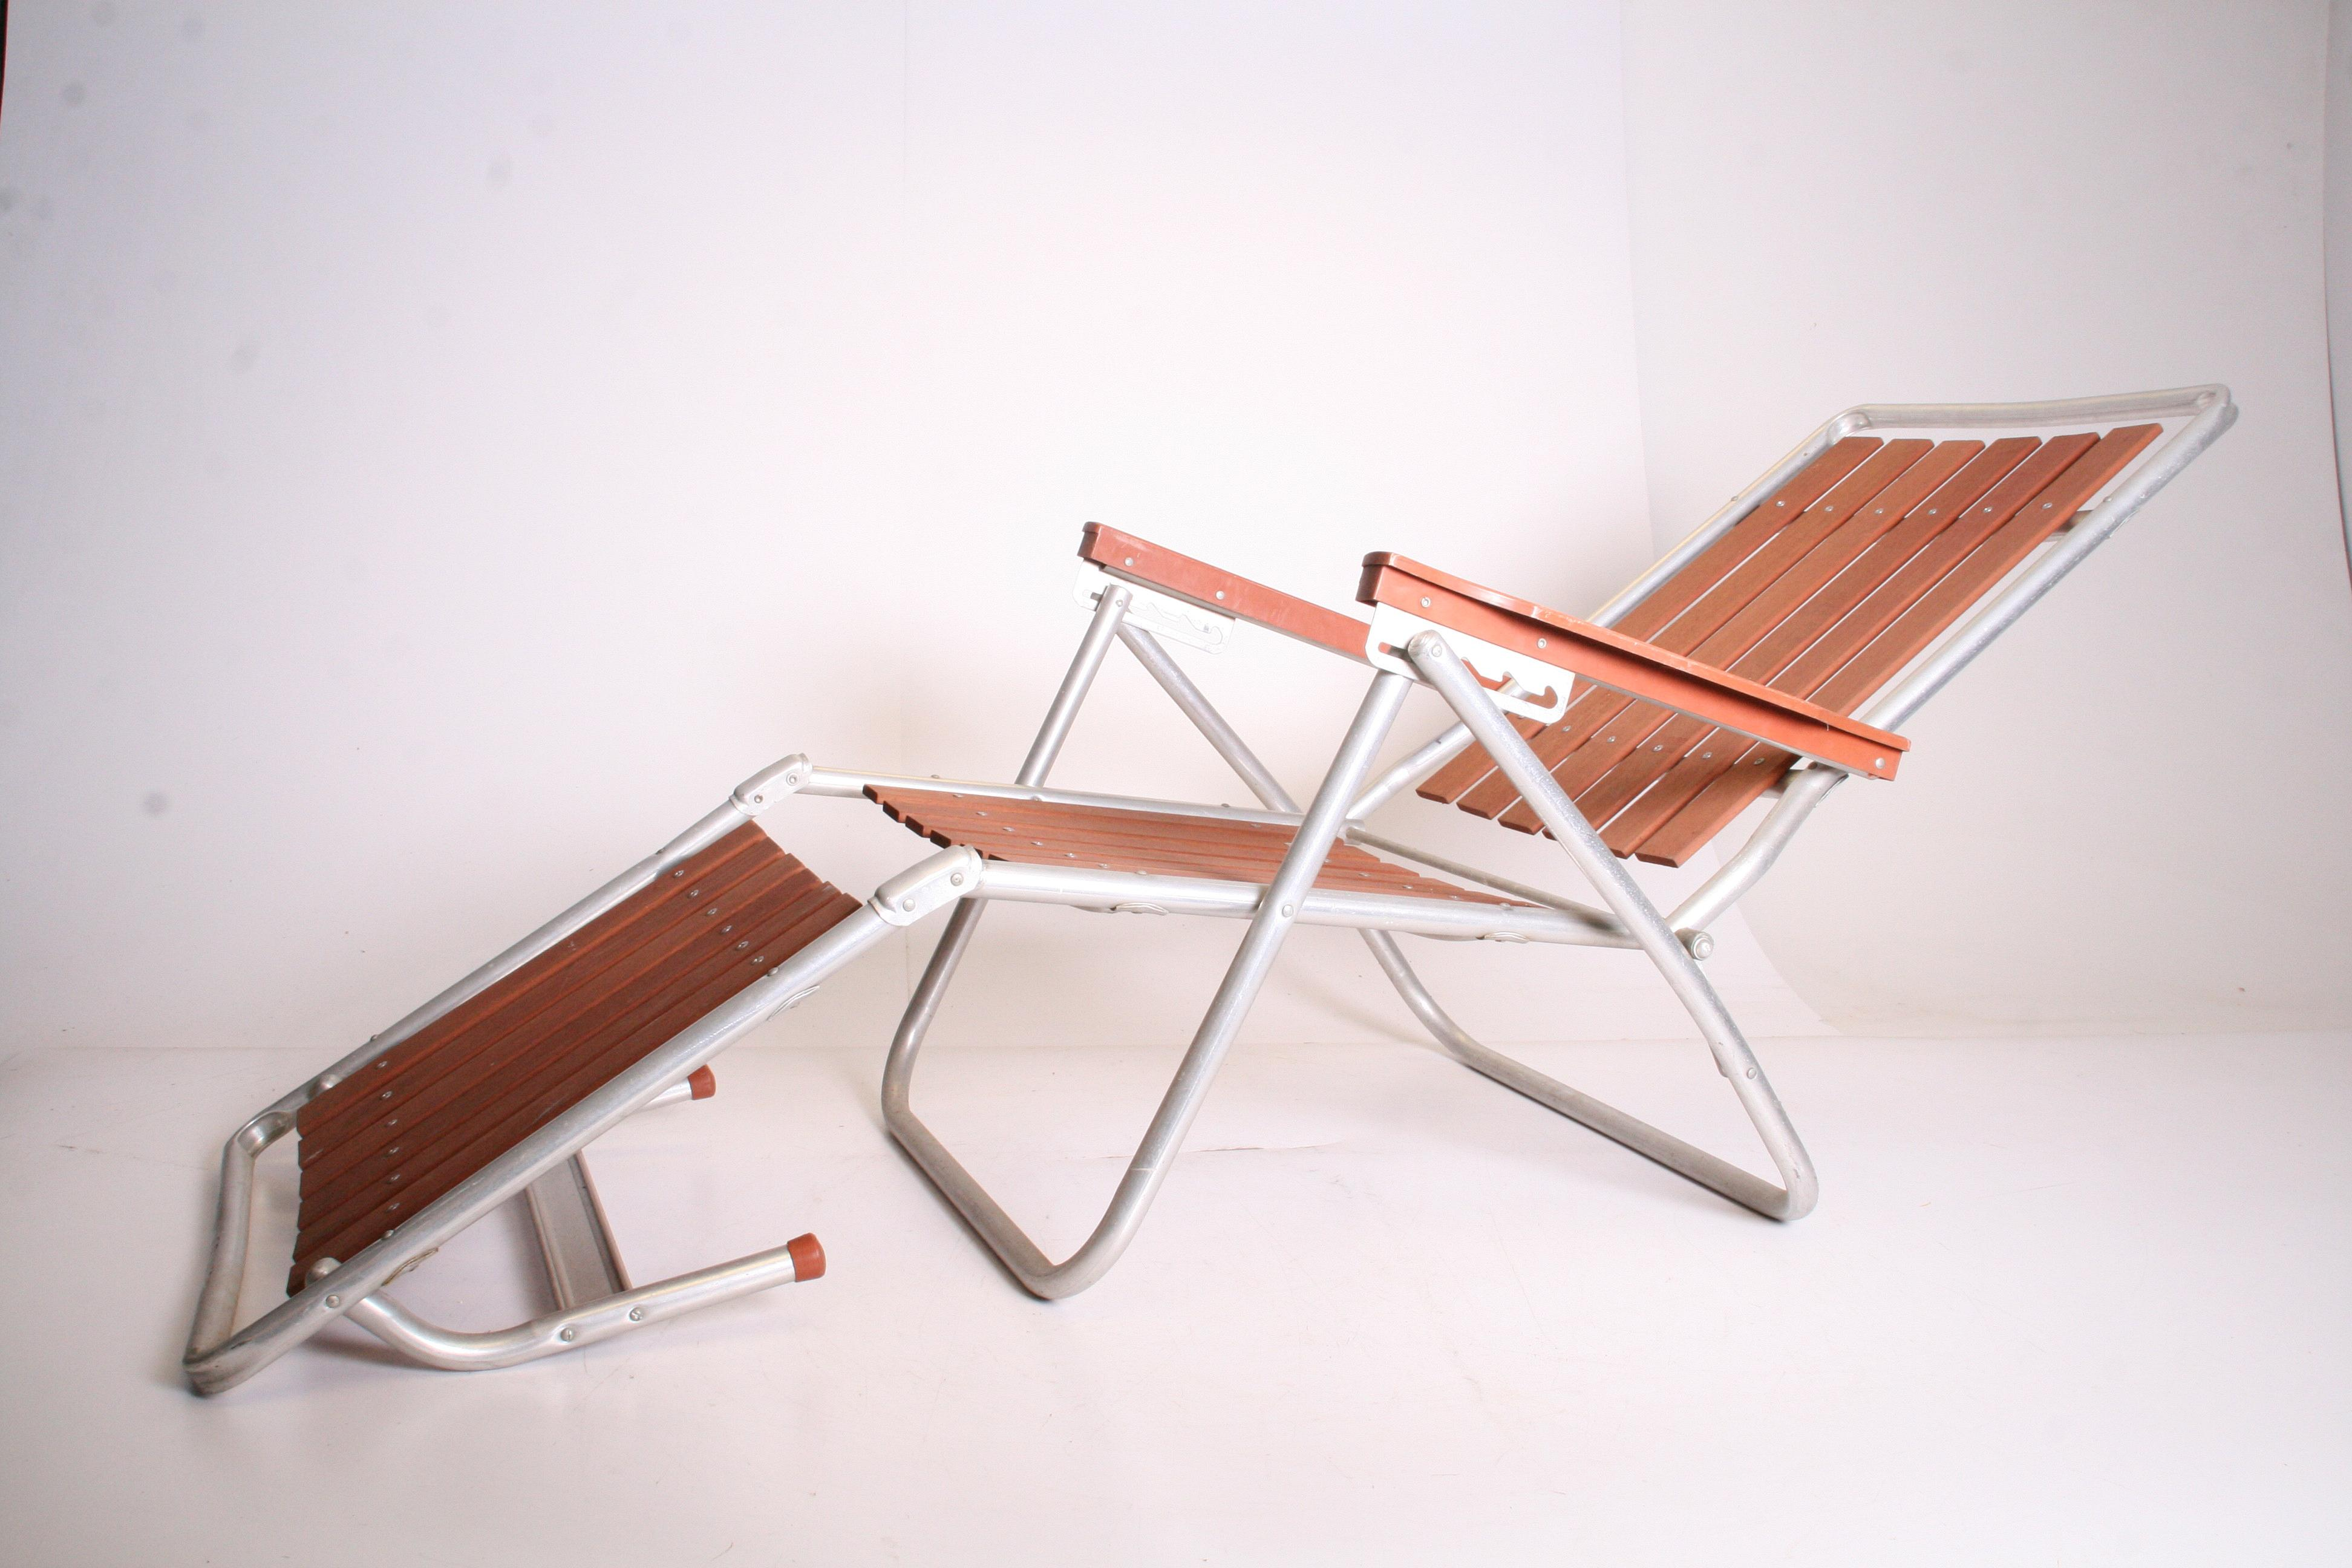 Mid Century Redwood Aluminum Folding Chaise Lounge Chair - Image 6 of 11  sc 1 st  Chairish : redwood chaise lounge - Sectionals, Sofas & Couches